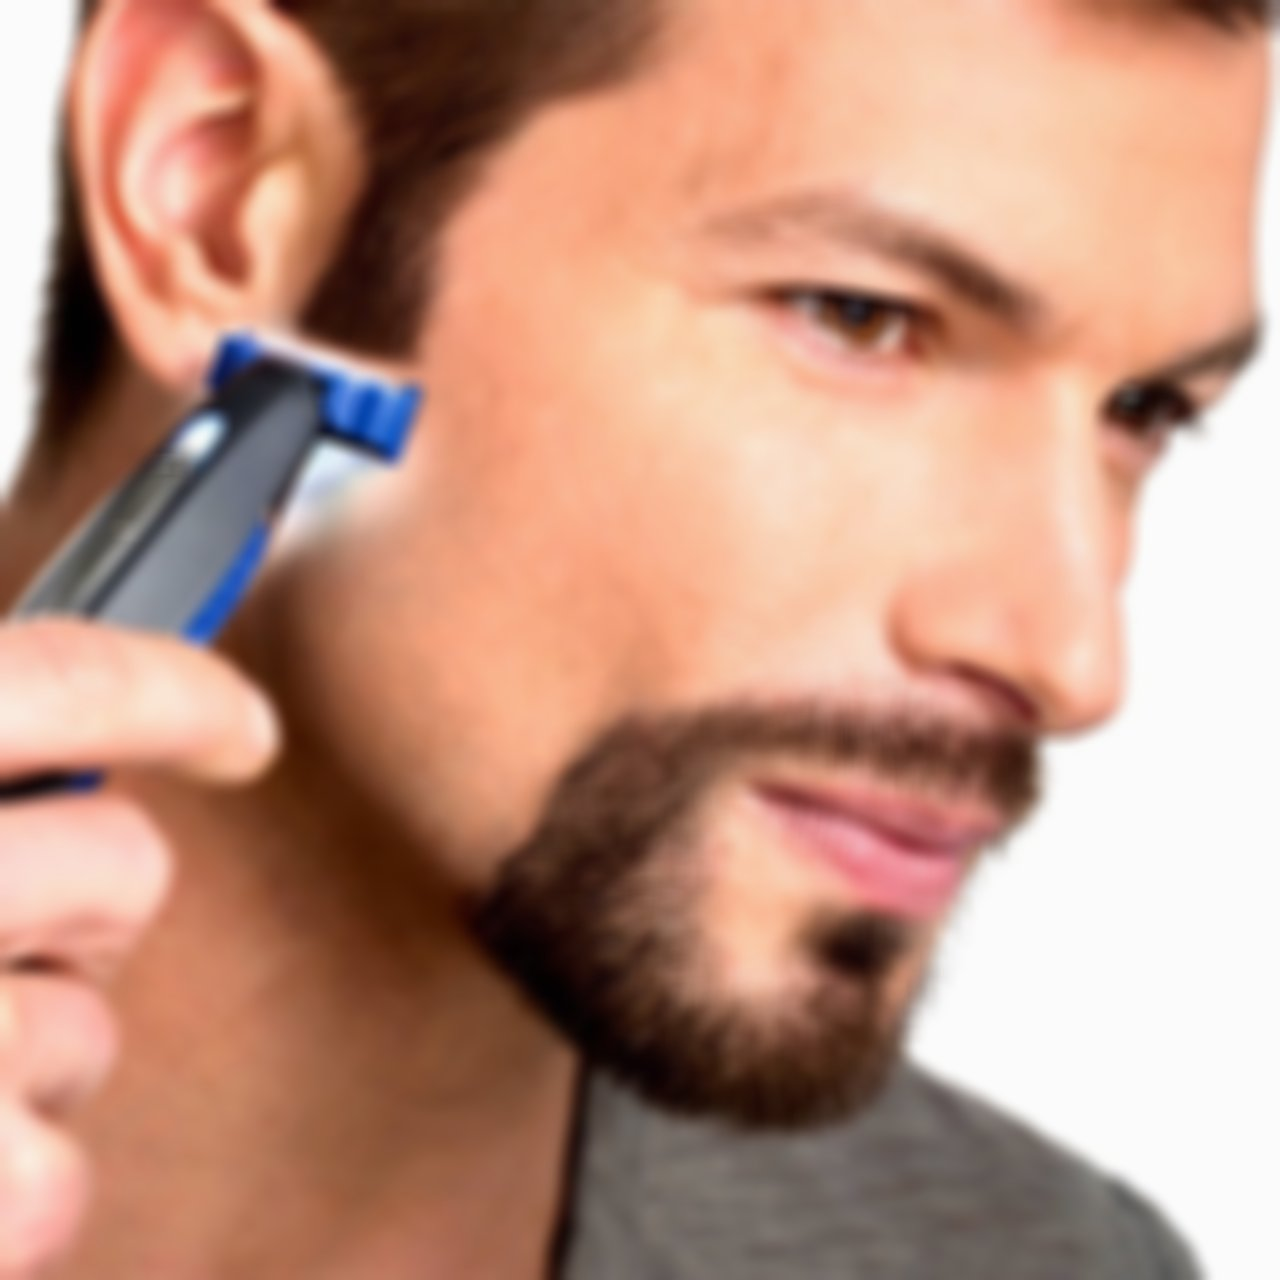 SKRTEN Smart Razor For Men Micro Touch SOLO Rechargeable Trims/Trimmer Edges Shaves As Seen On TV